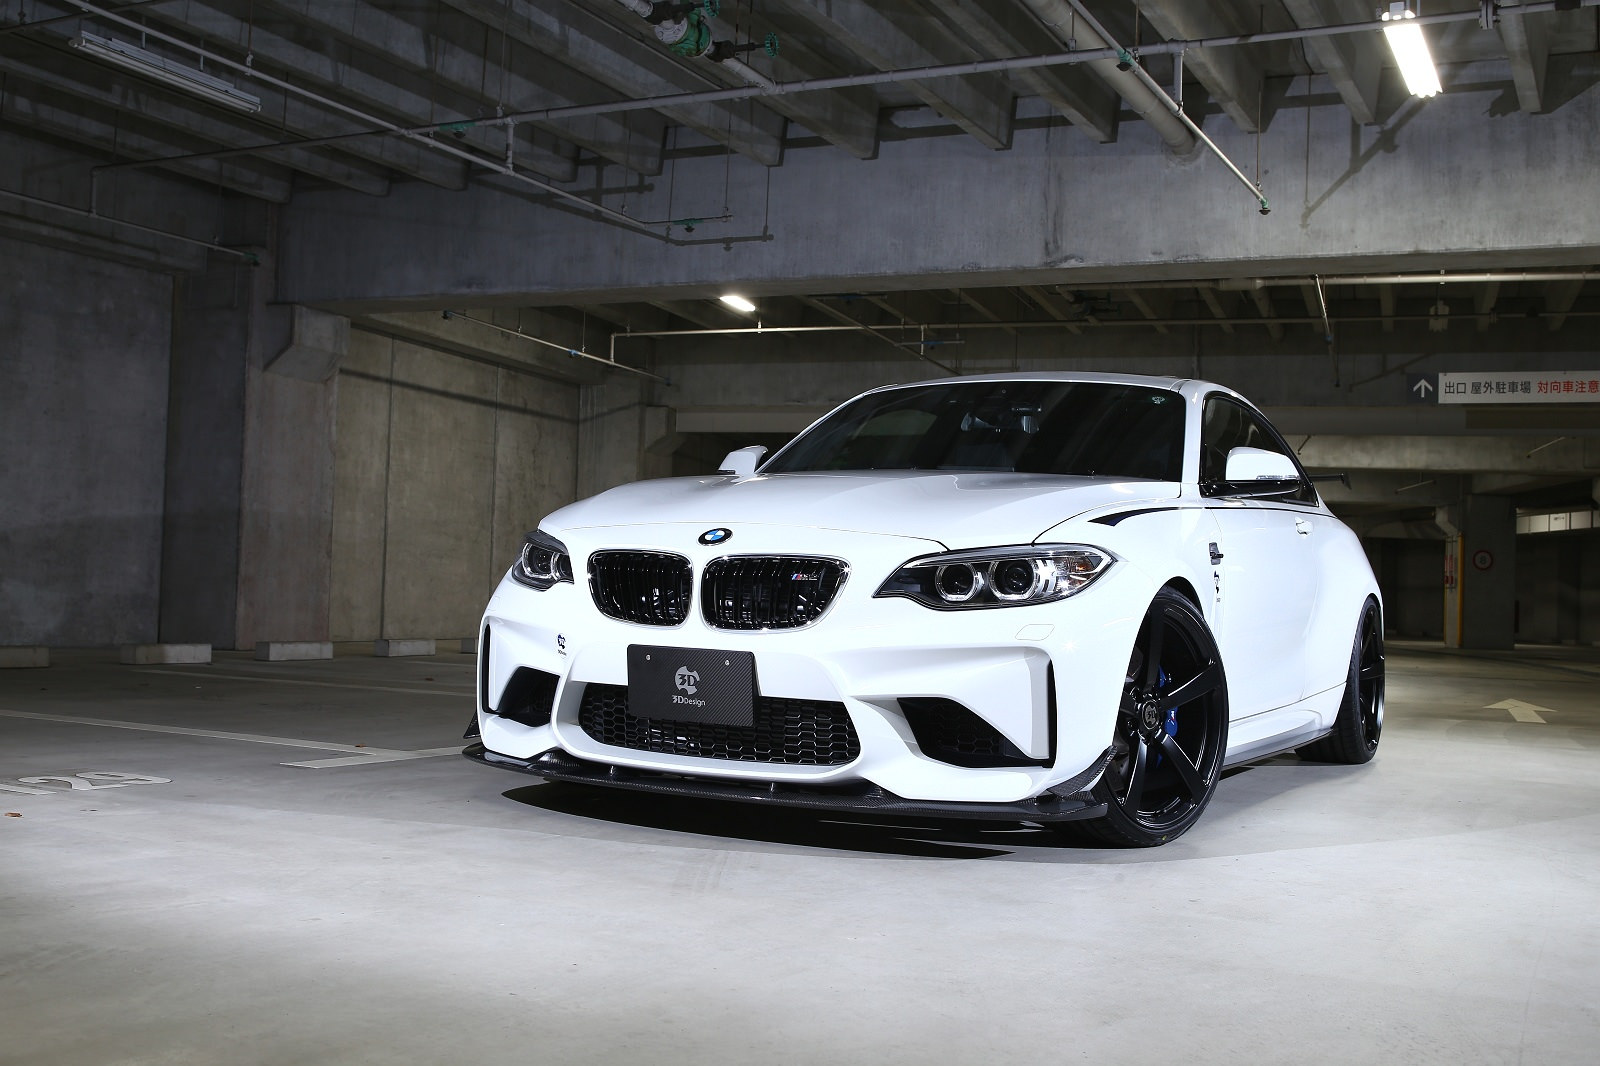 3D Design Gives The BMW M2 Some Extra Spice In The Looks